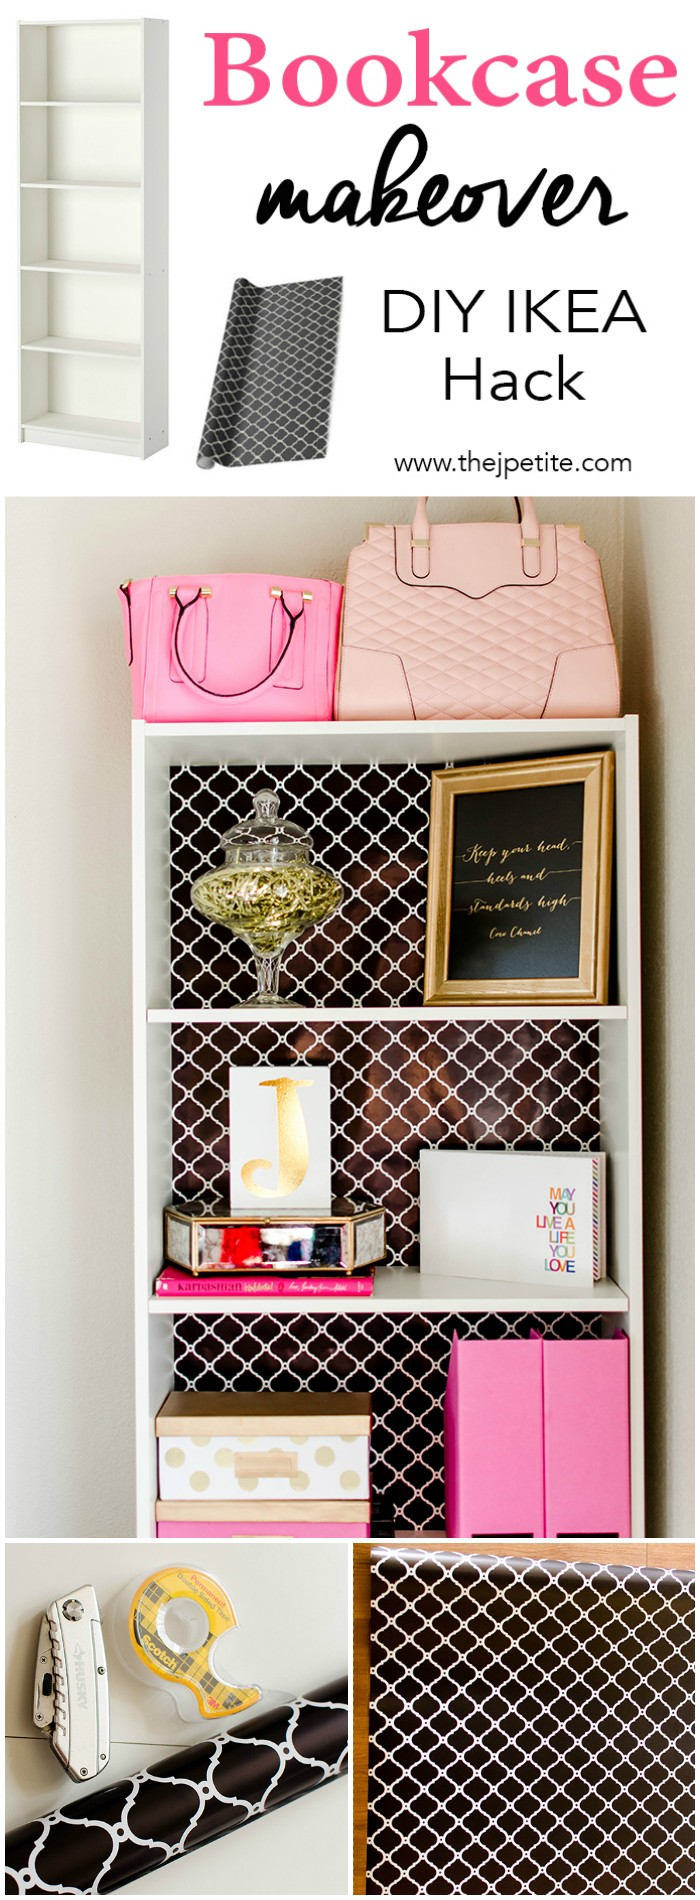 Bookcase Makeover DIY IKEA Hack IKEA Hacks For Your Home Decor